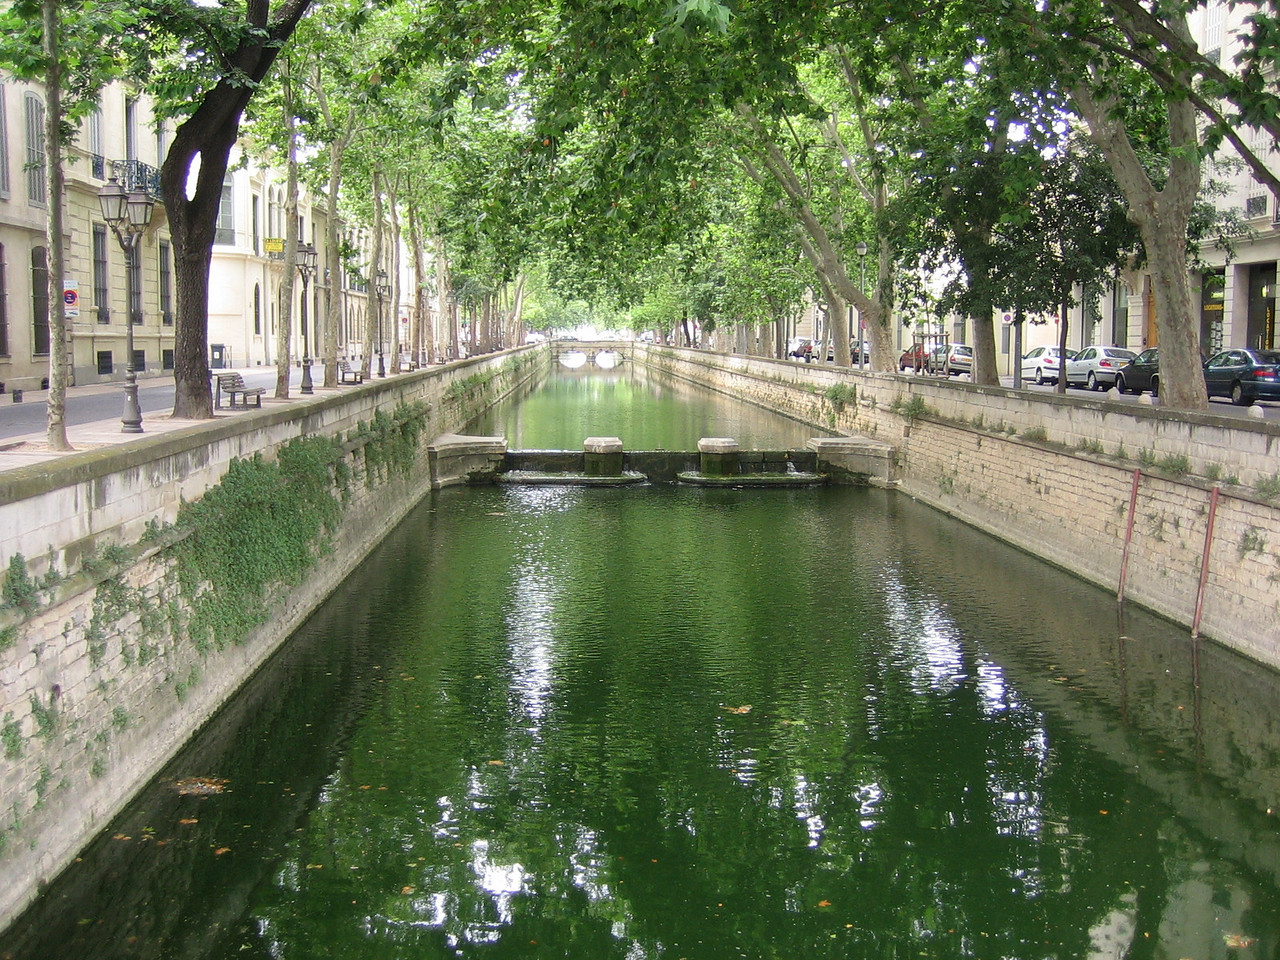 Canals built to supply textile workers with water for dying fabrics. Location - Nimes